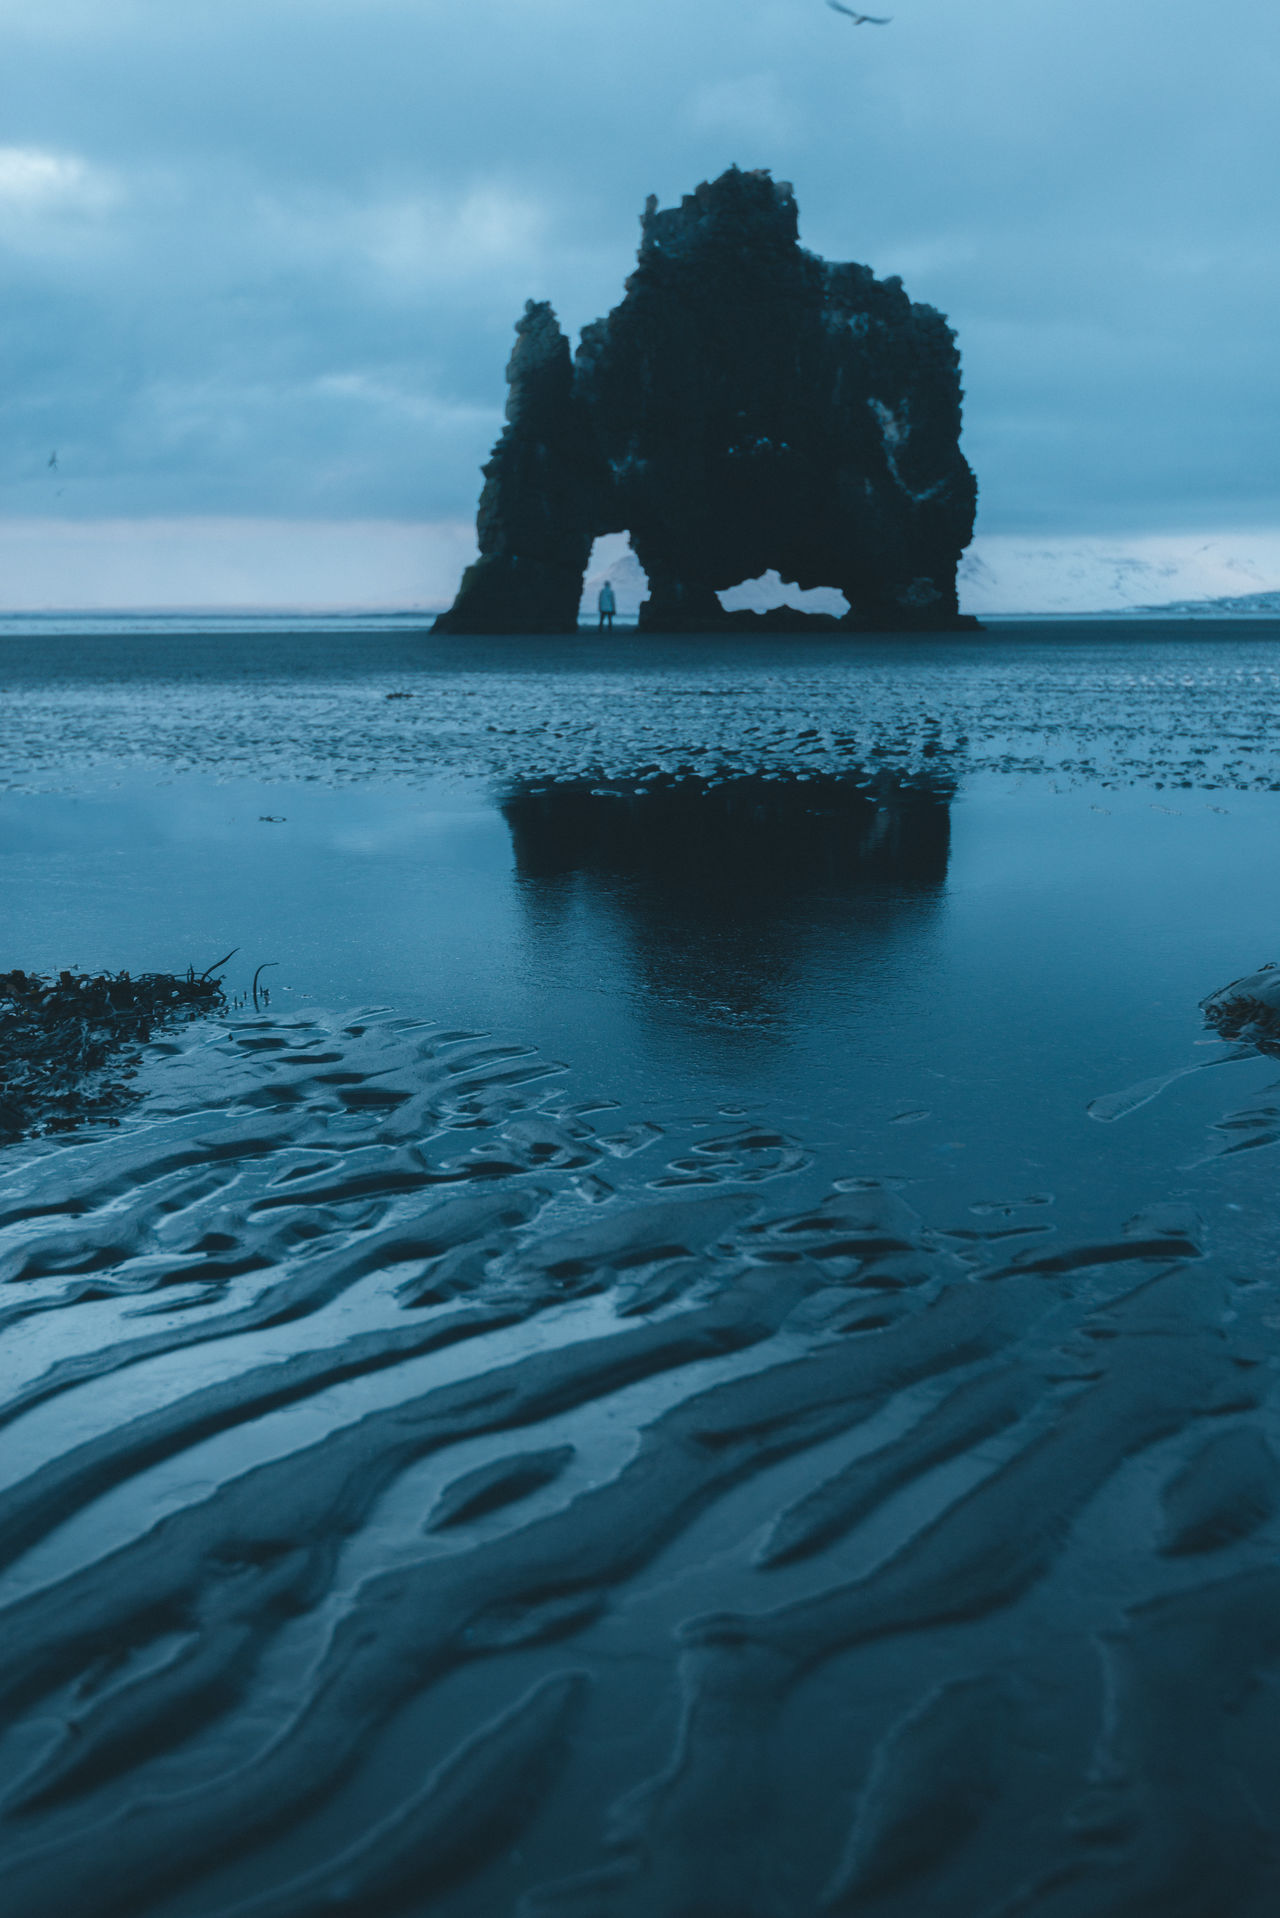 Rock formation in iceland on a black sand beach Beach Beauty In Nature Cloud - Sky Day Horizon Over Water Iceberg Nature No People Outdoors Rock - Object Scenics Sea Sky Sunset Tranquil Scene Tranquility Water Waterfront